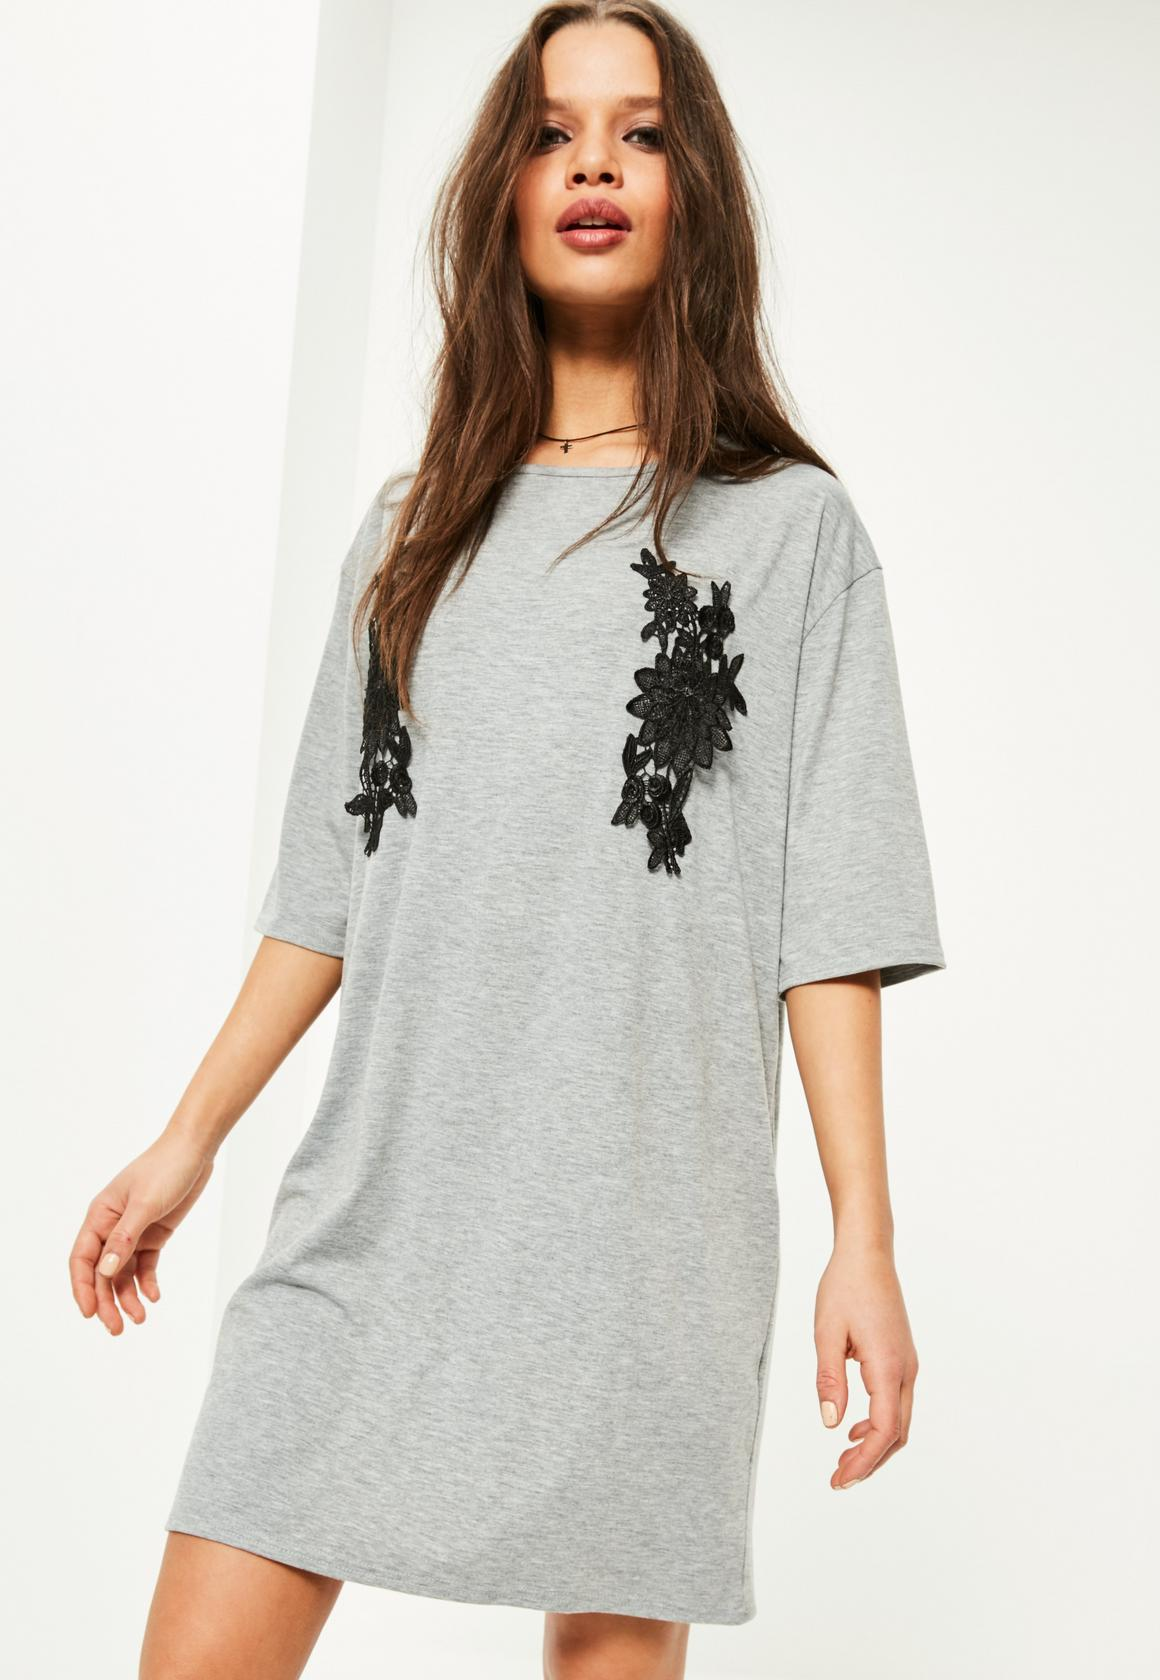 Buying the t-shirt dresses is perfect for you?